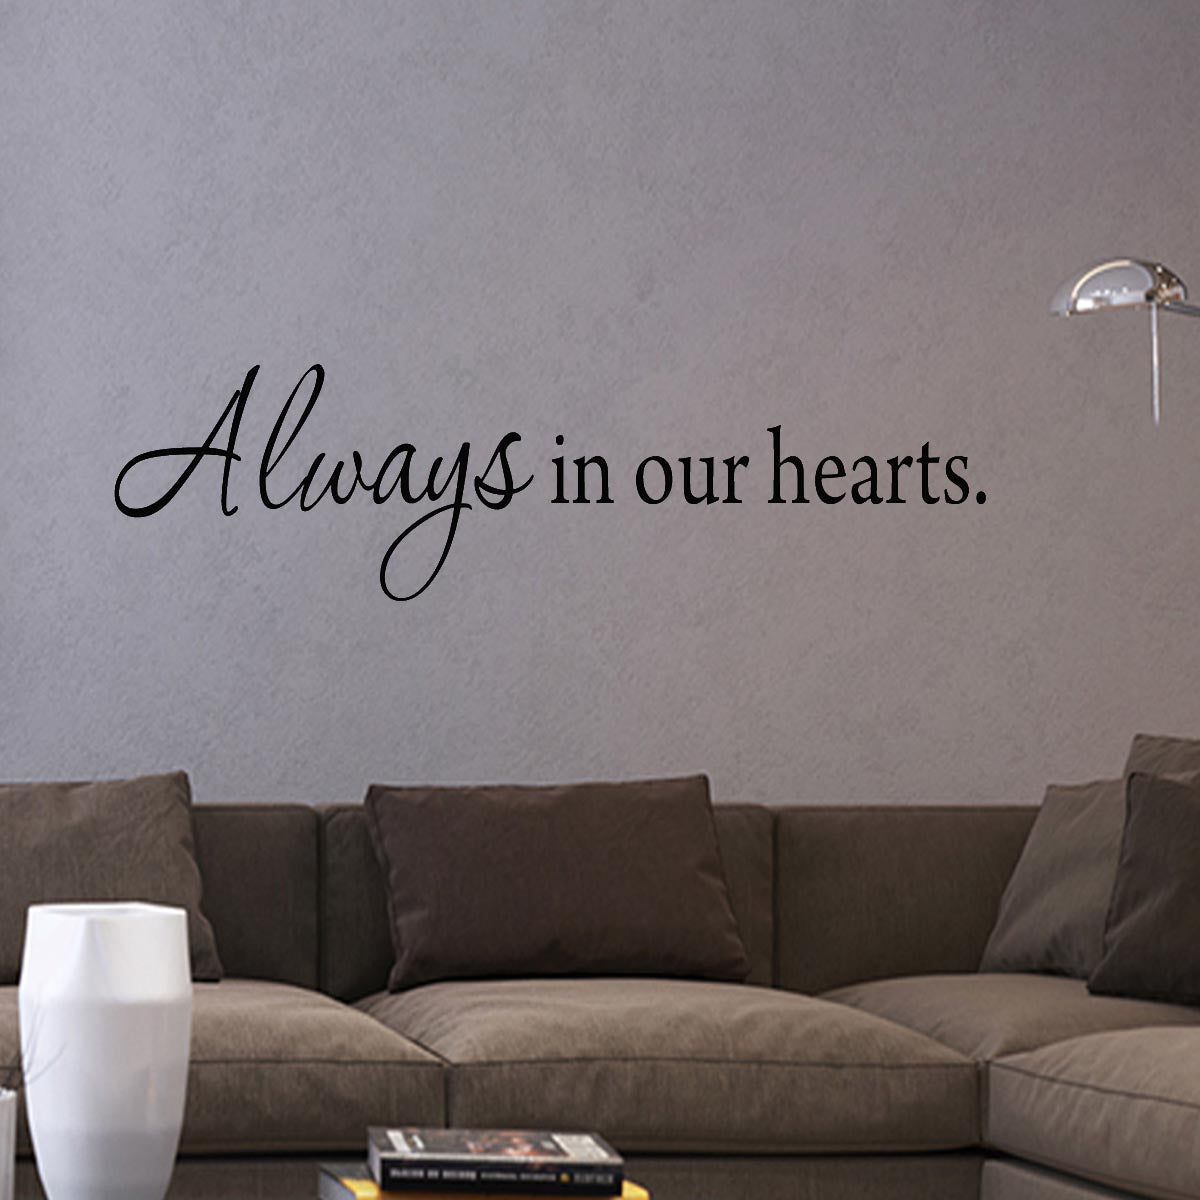 ONE LOVE ONE HEART...WALL QUOTE VINYL DECOR STCKER DECAL STENCIL MURAL GRAPHIC